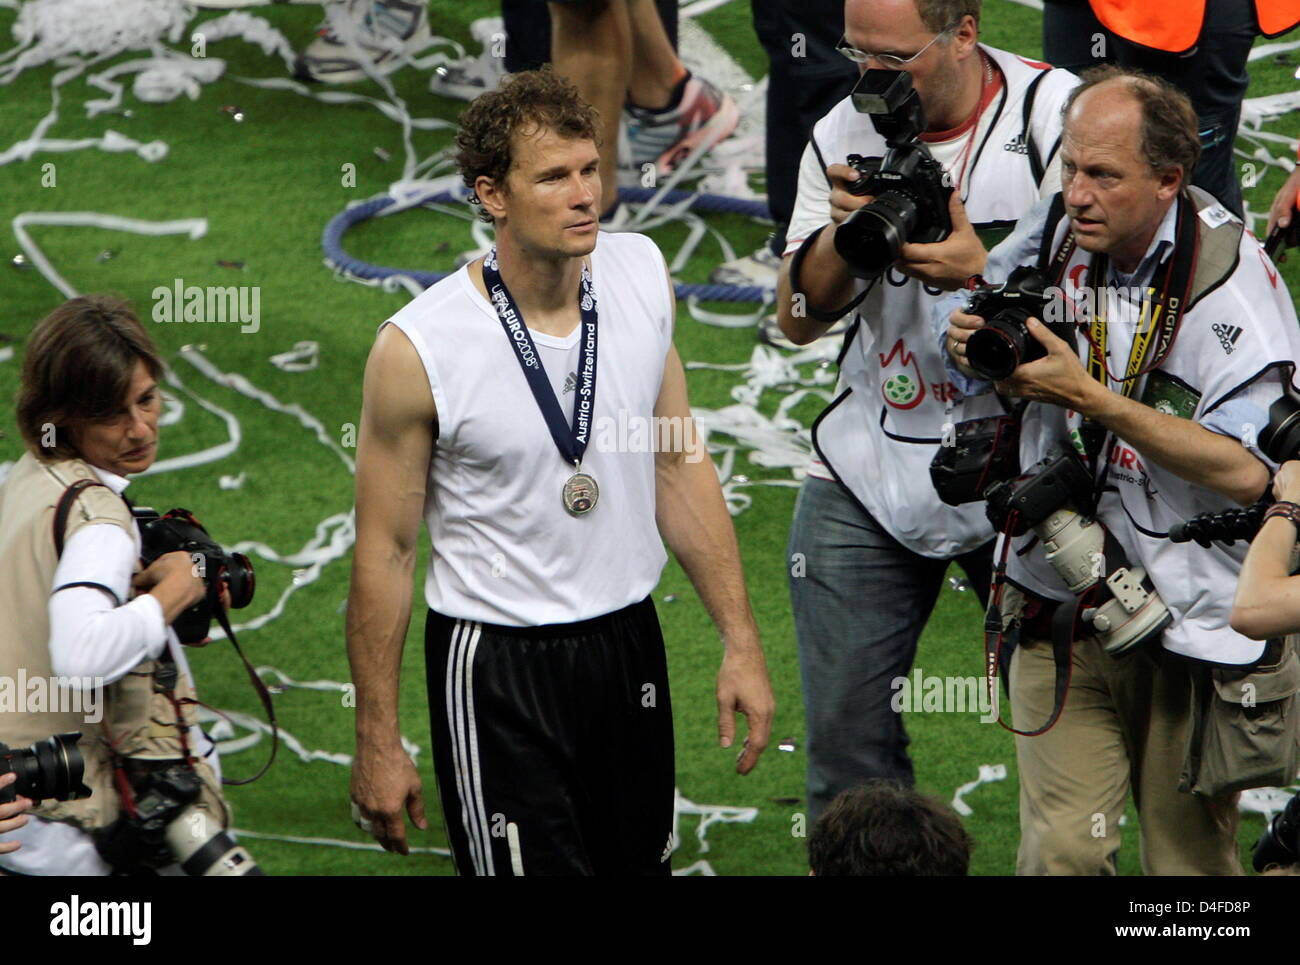 Goalkeeper Jens Lehmann of Germany leaves the pitch after Spain defeated Germany 1-0 during the UEFA EURO 2008 final - Stock Image